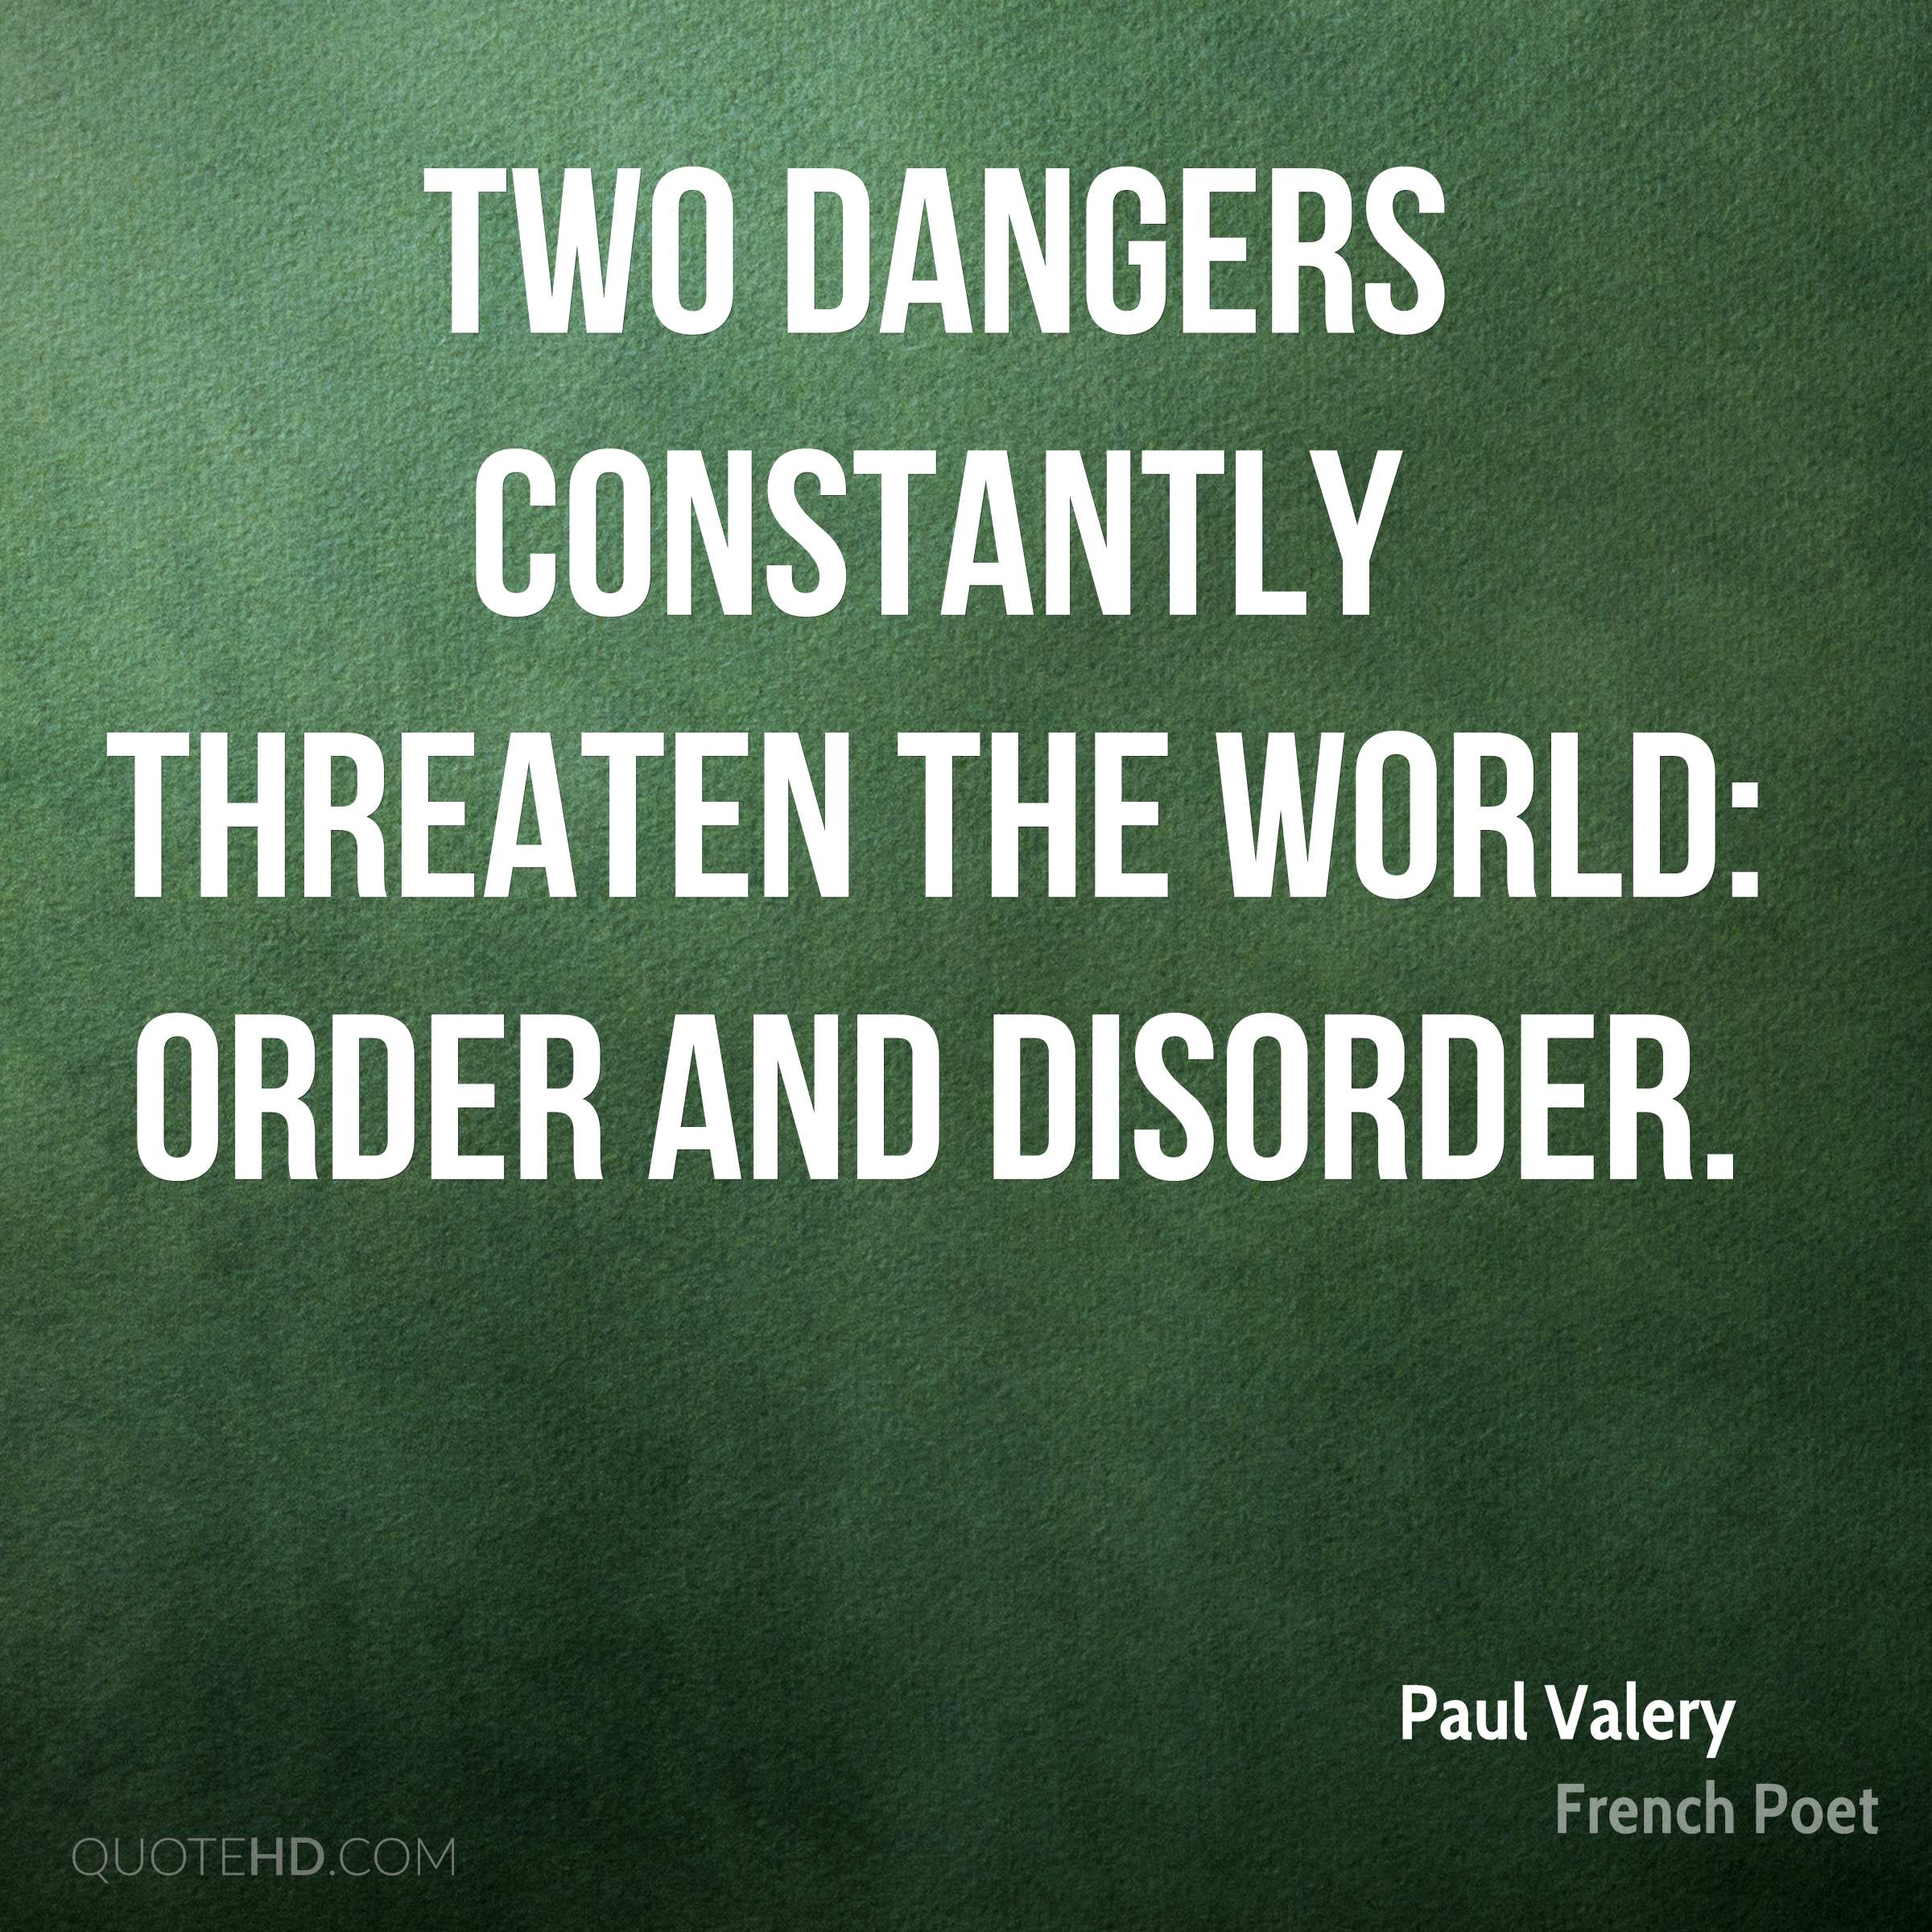 Two dangers constantly threaten the world: order and disorder.